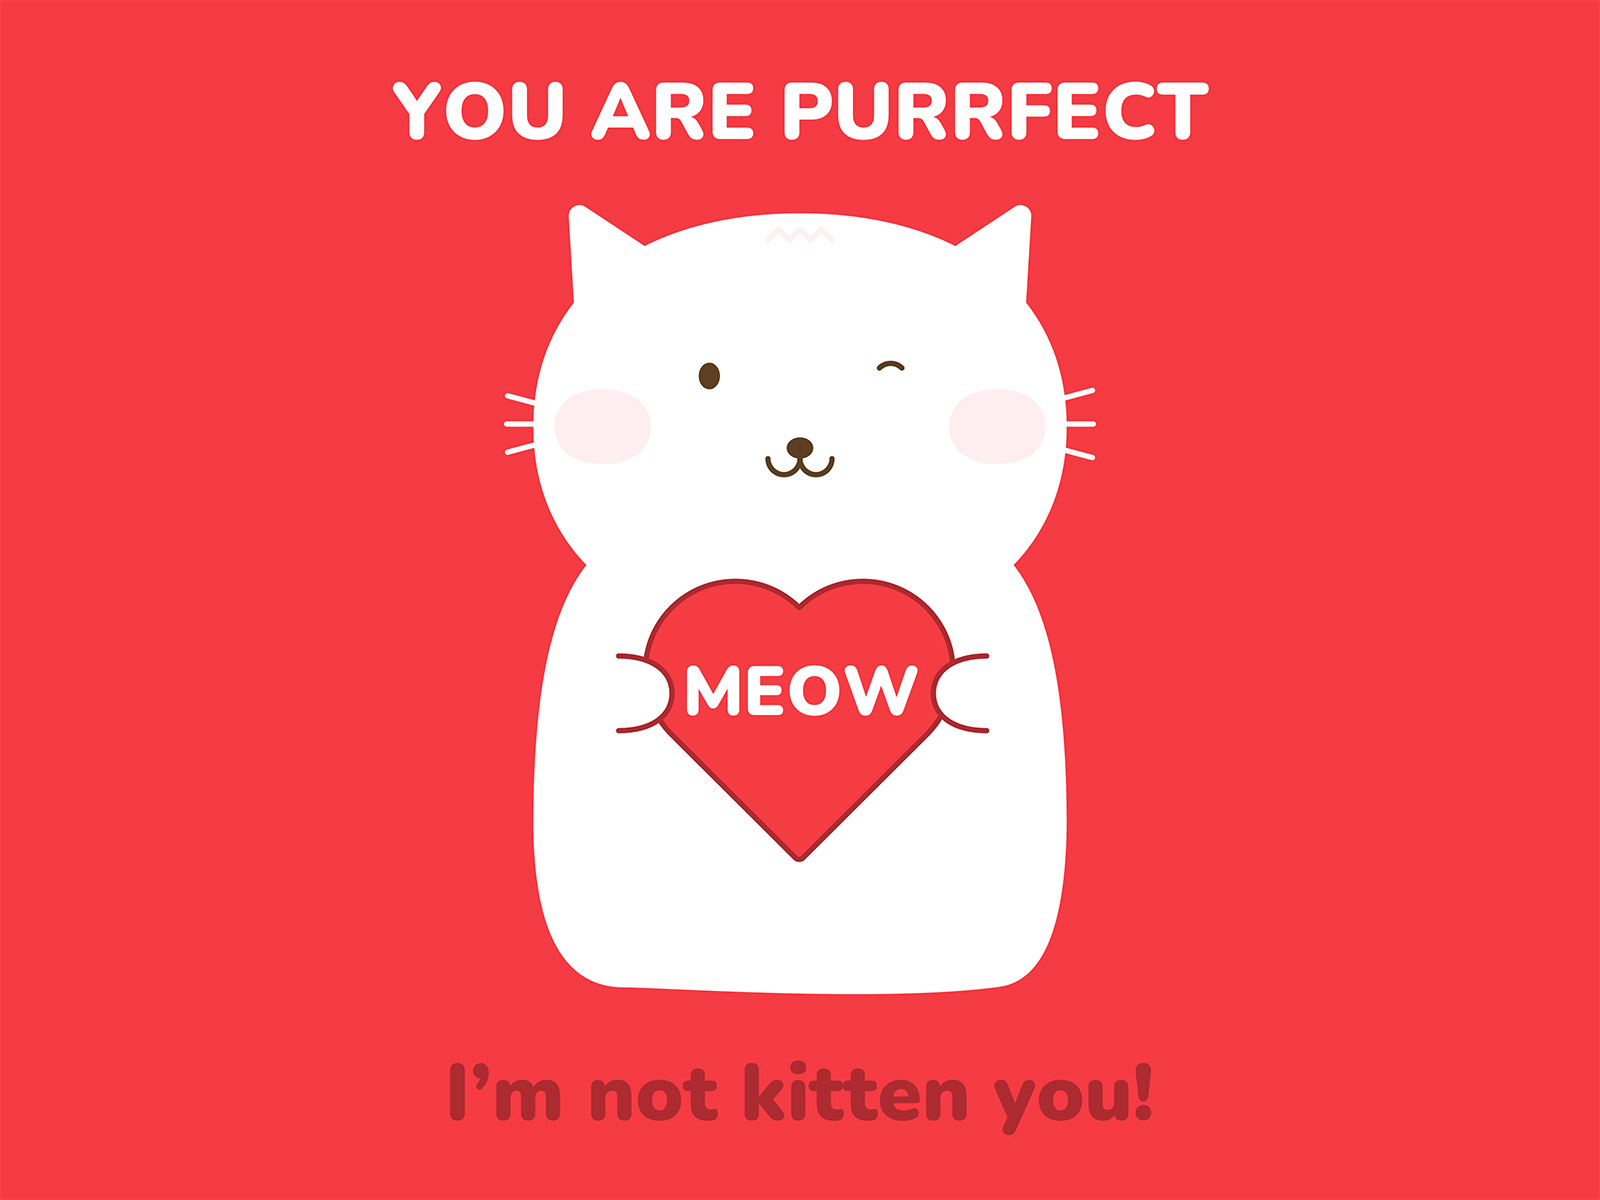 You Are Purrfect. I'm not kitten you! Cat pun